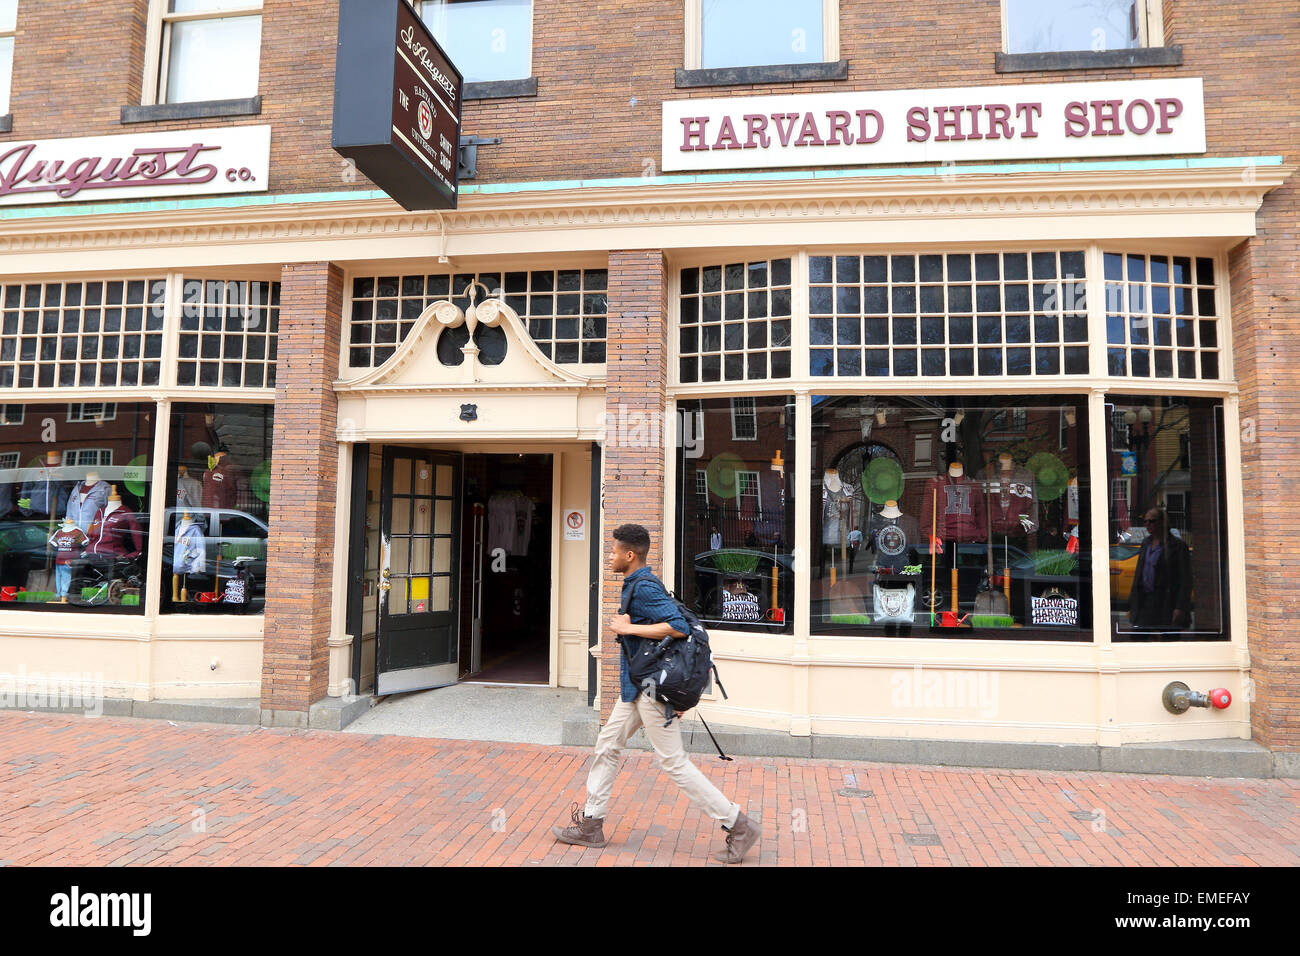 Cambrige city Harvard Shirt Shop supplying clothing for tourists and Harvard university students. - Stock Image